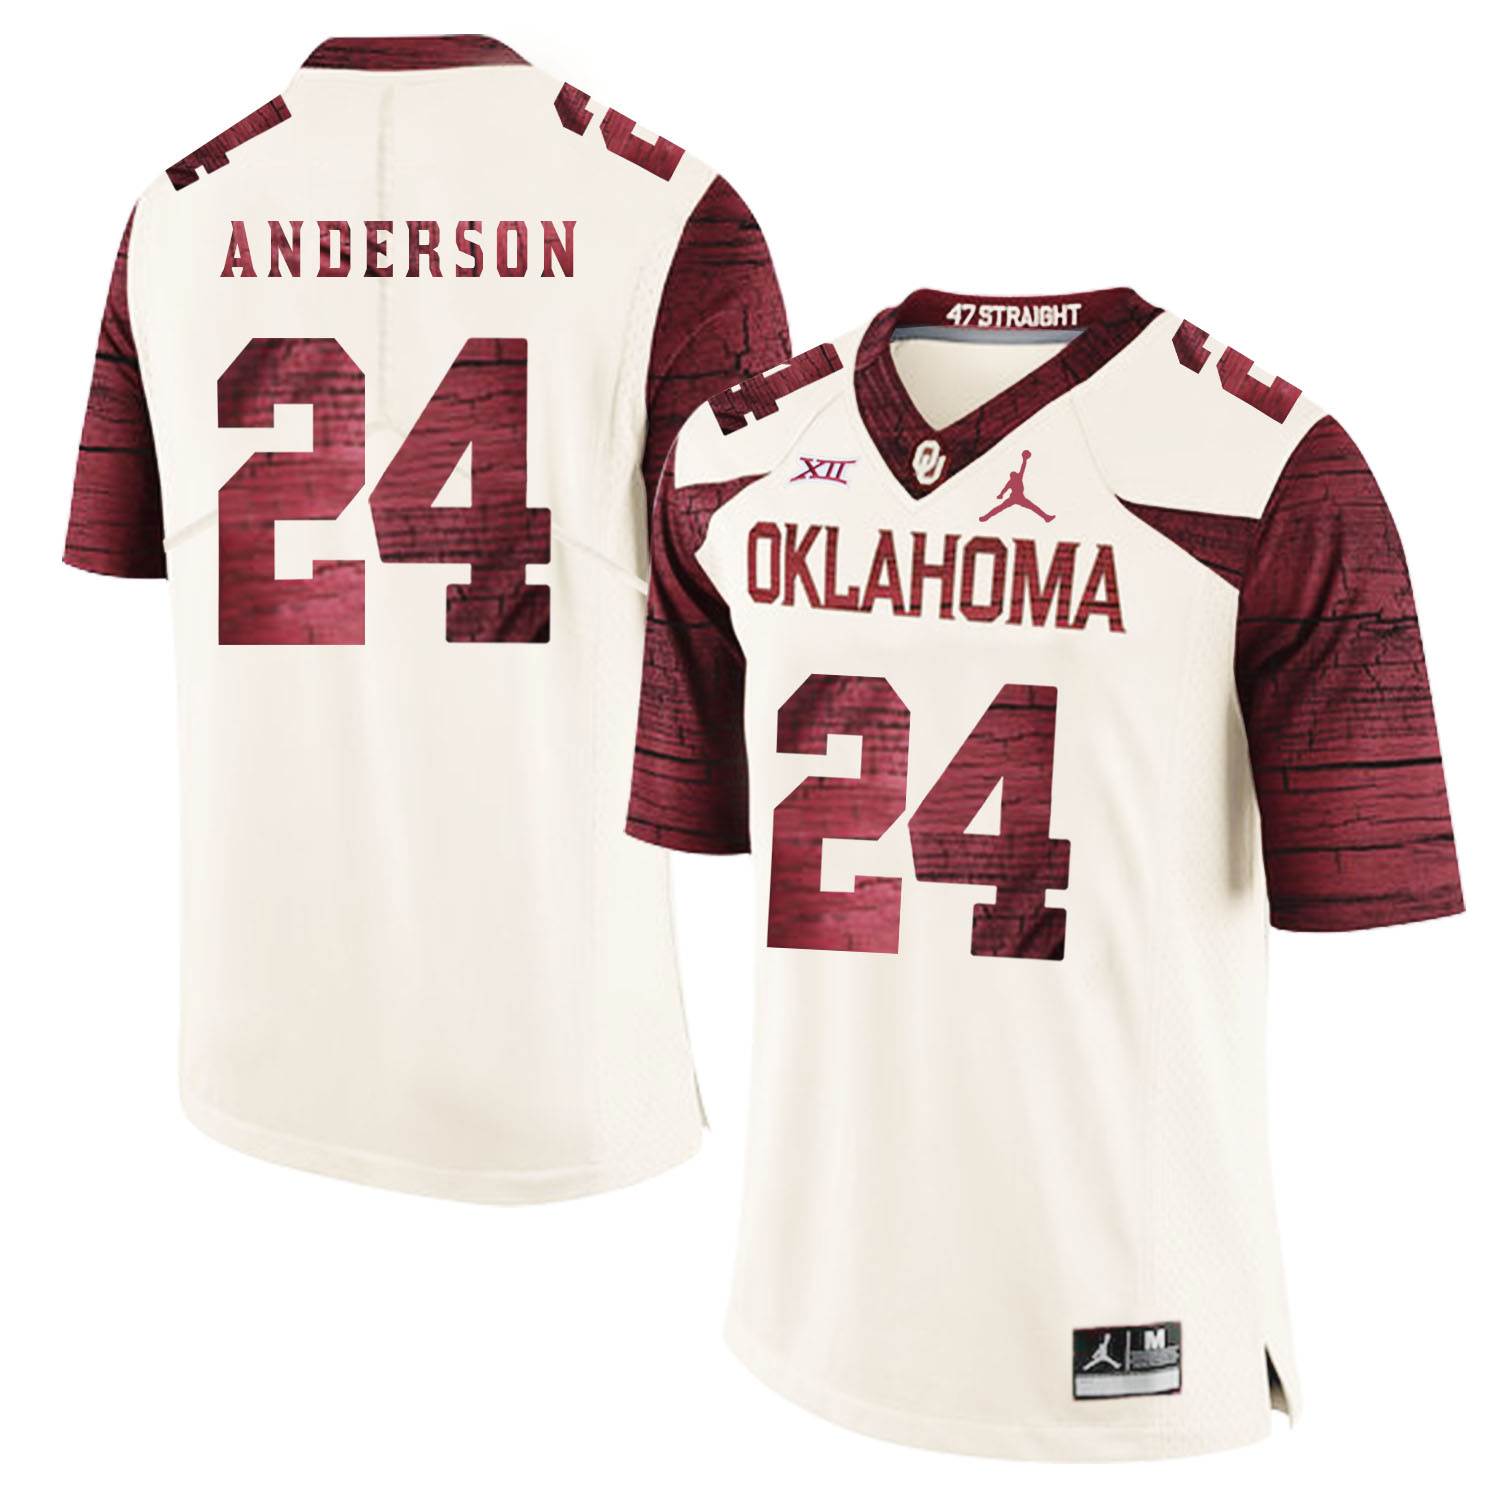 Oklahoma Sooners 24 Rodney Anderson White 47 Game Winning Streak College Football Jersey